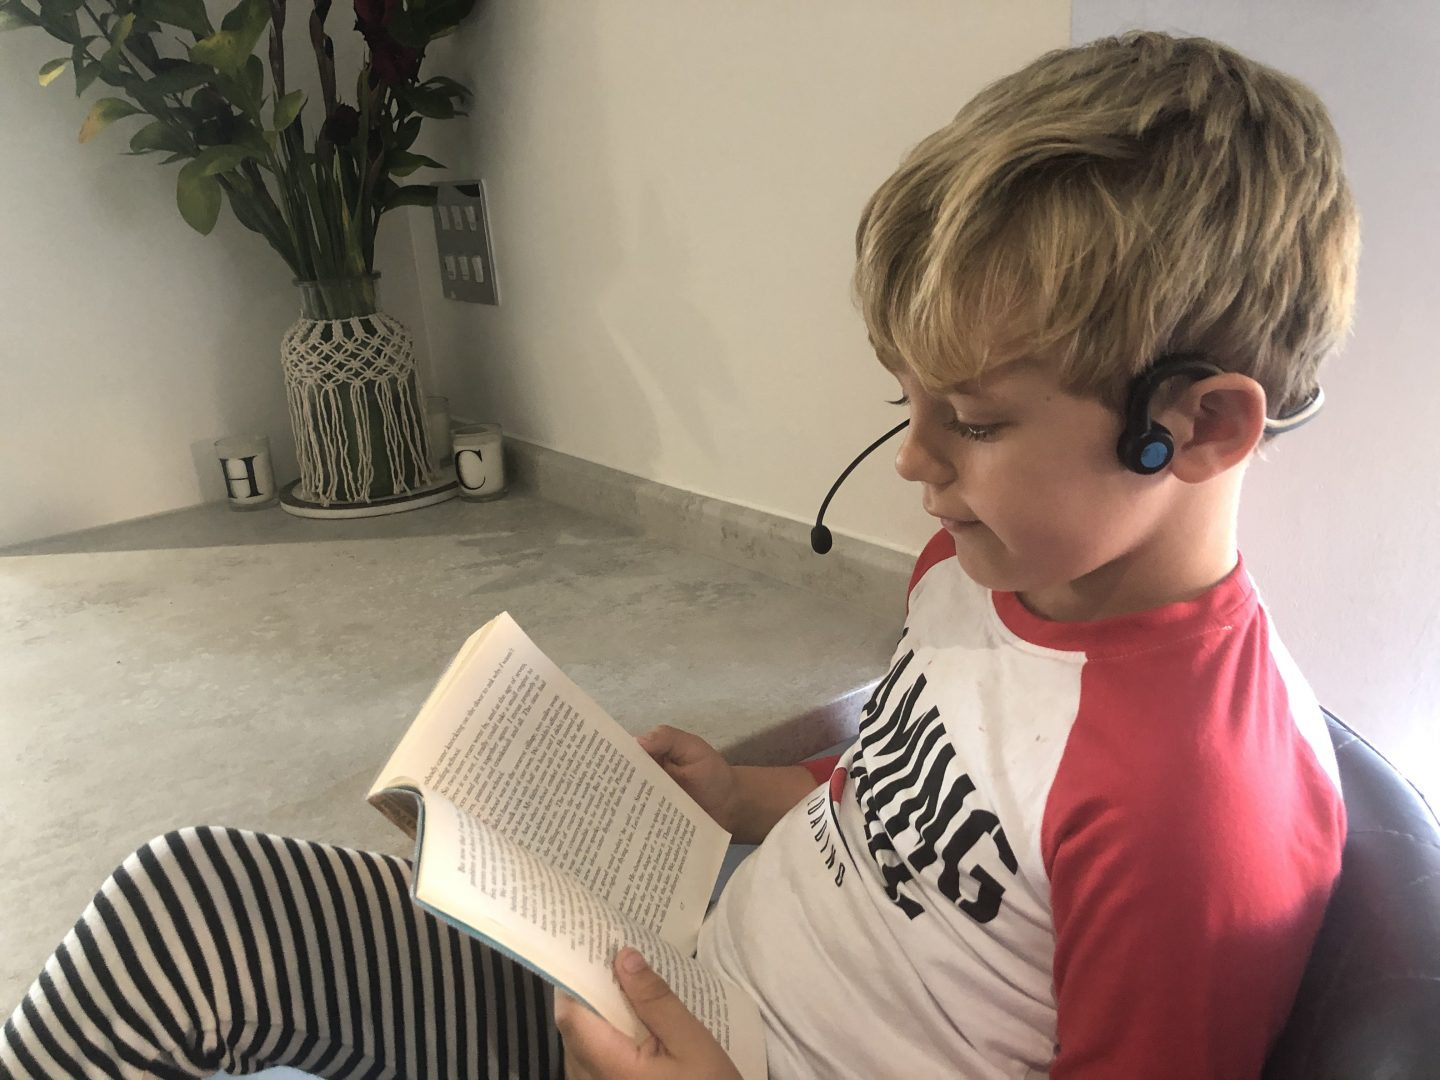 Harry reading a book and using the Forbrain Multisensory Headset